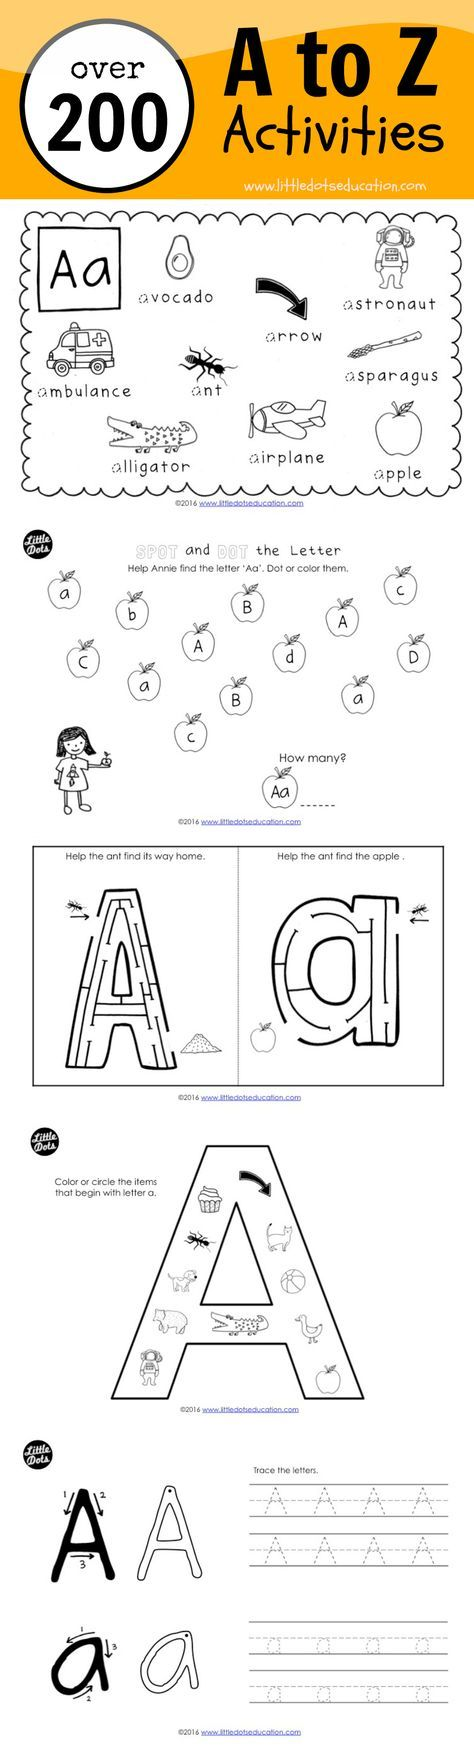 Best 10 letter s worksheets ideas on pinterest preschool best 10 letter s worksheets ideas on pinterest preschool worksheets free printable alphabet worksheets and number worksheets robcynllc Image collections